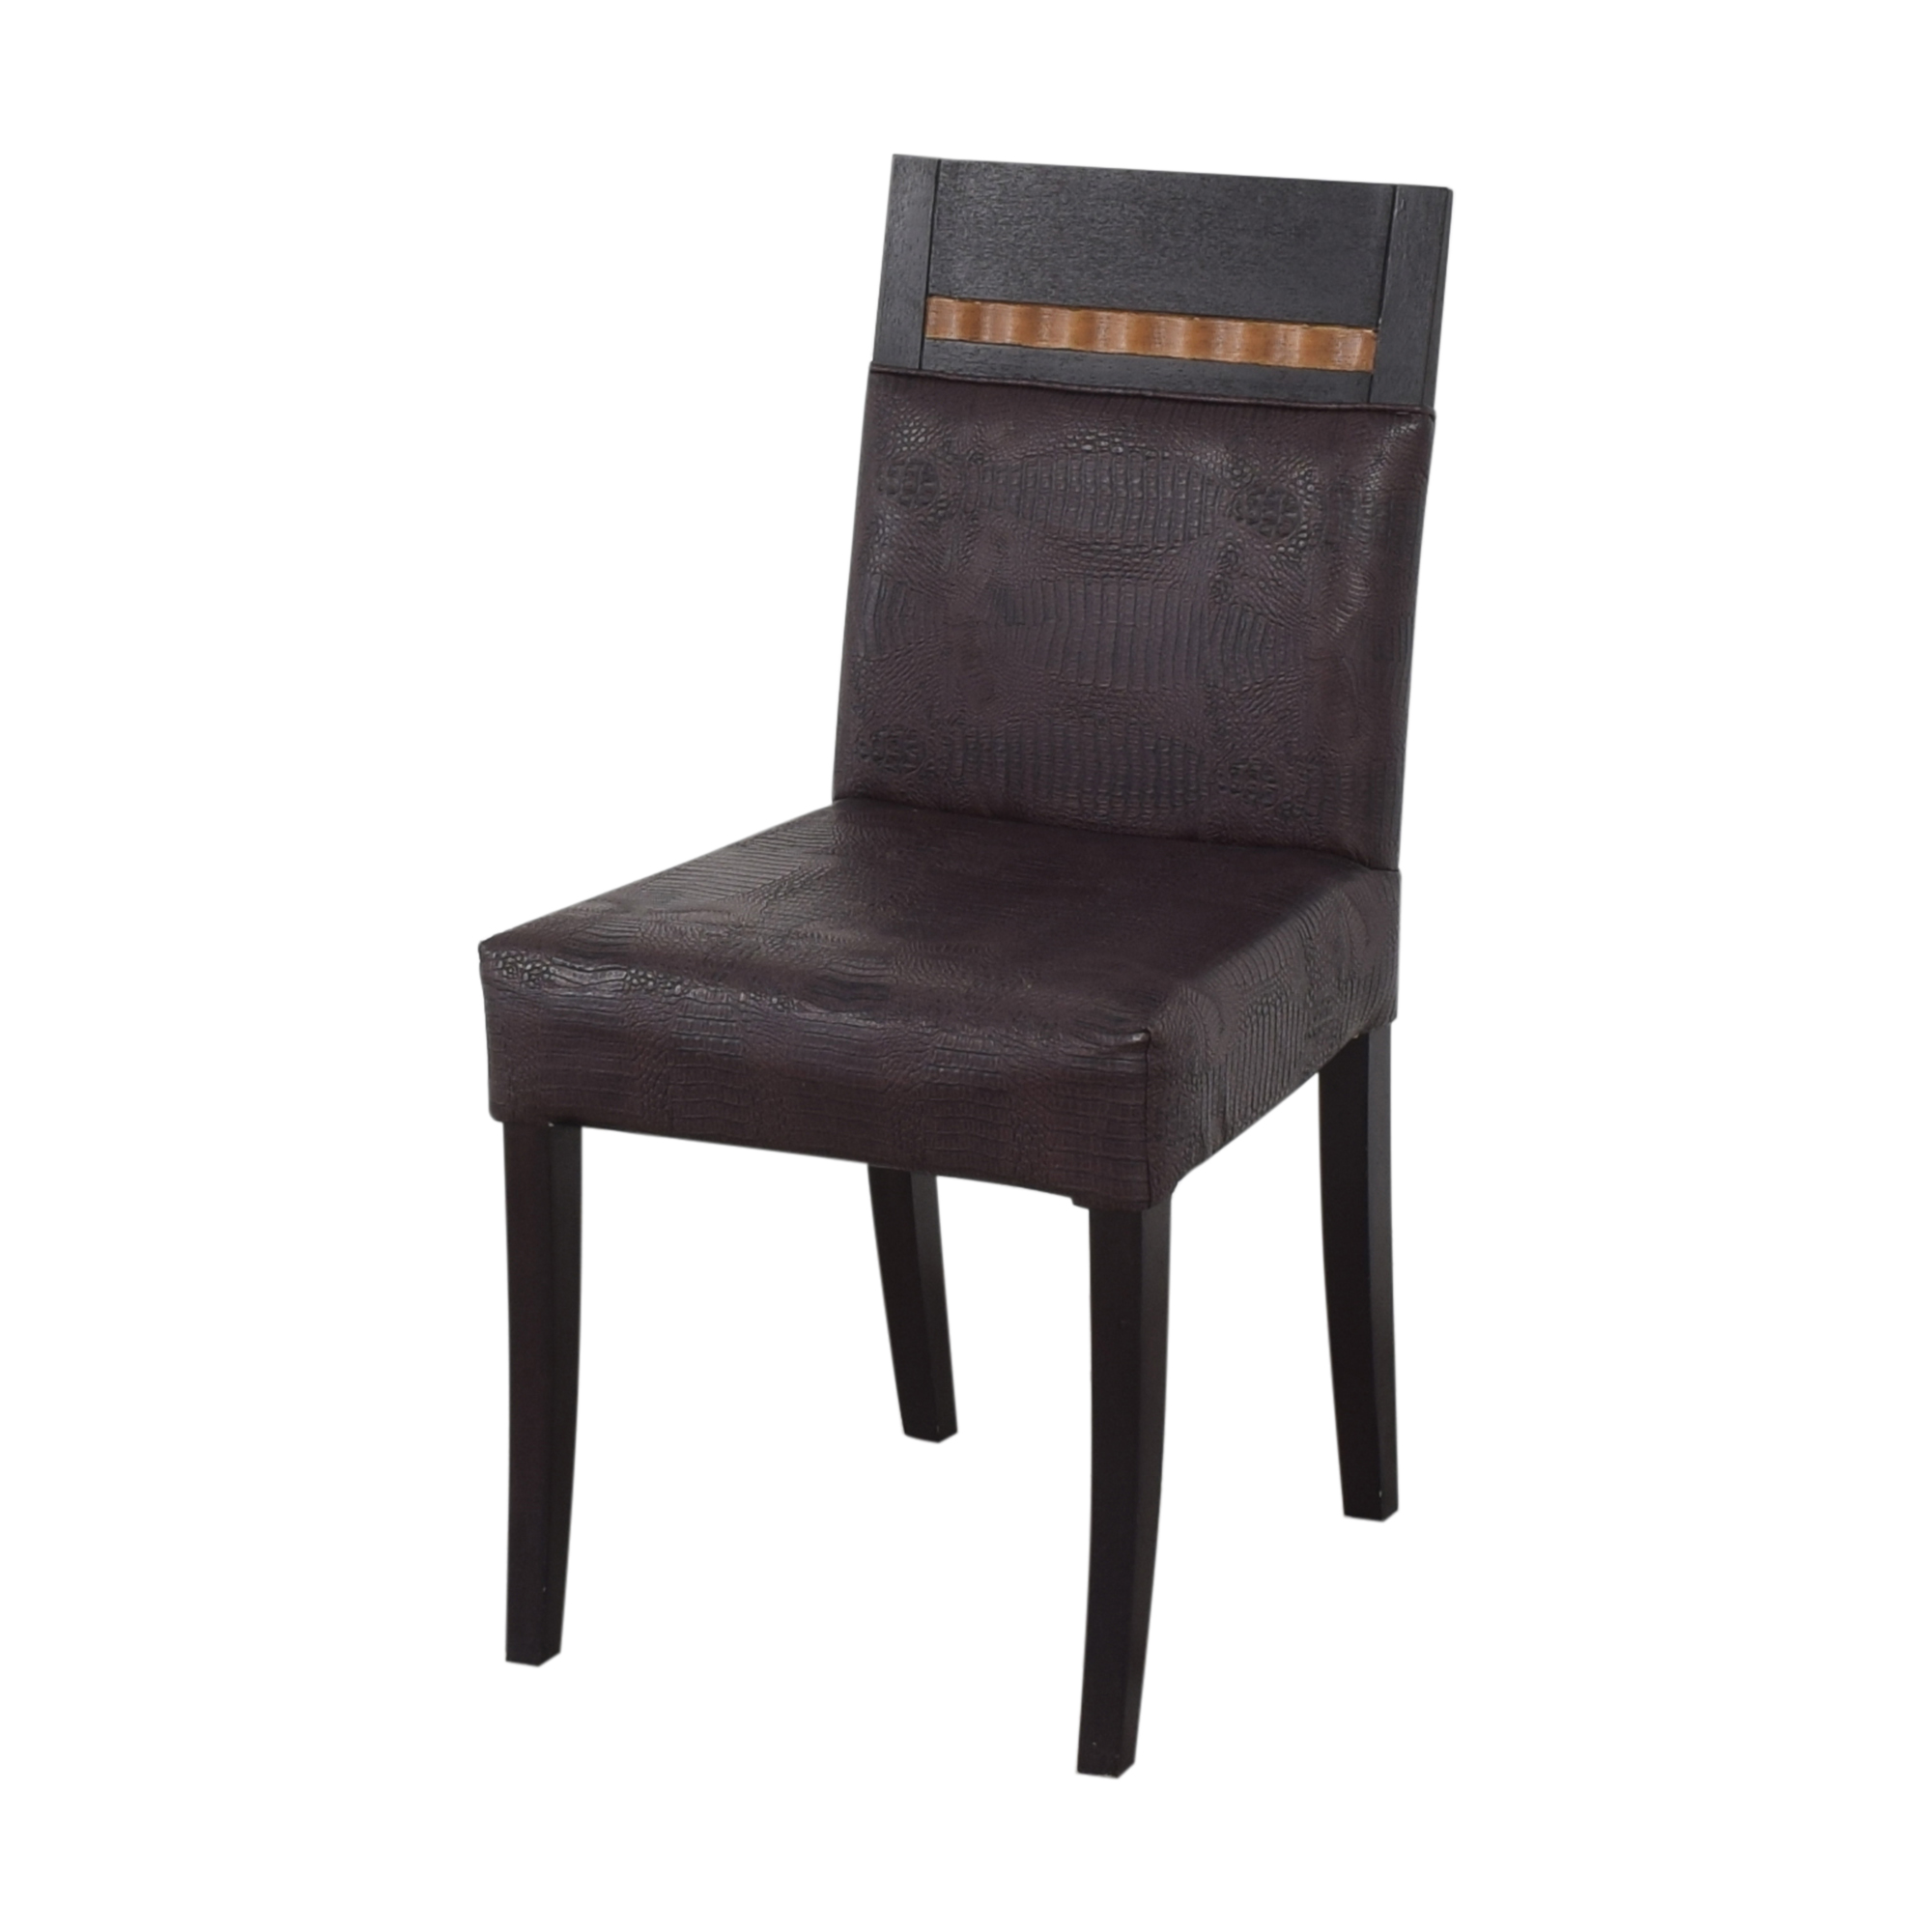 buy  Modern Upholstered Dining Chairs online